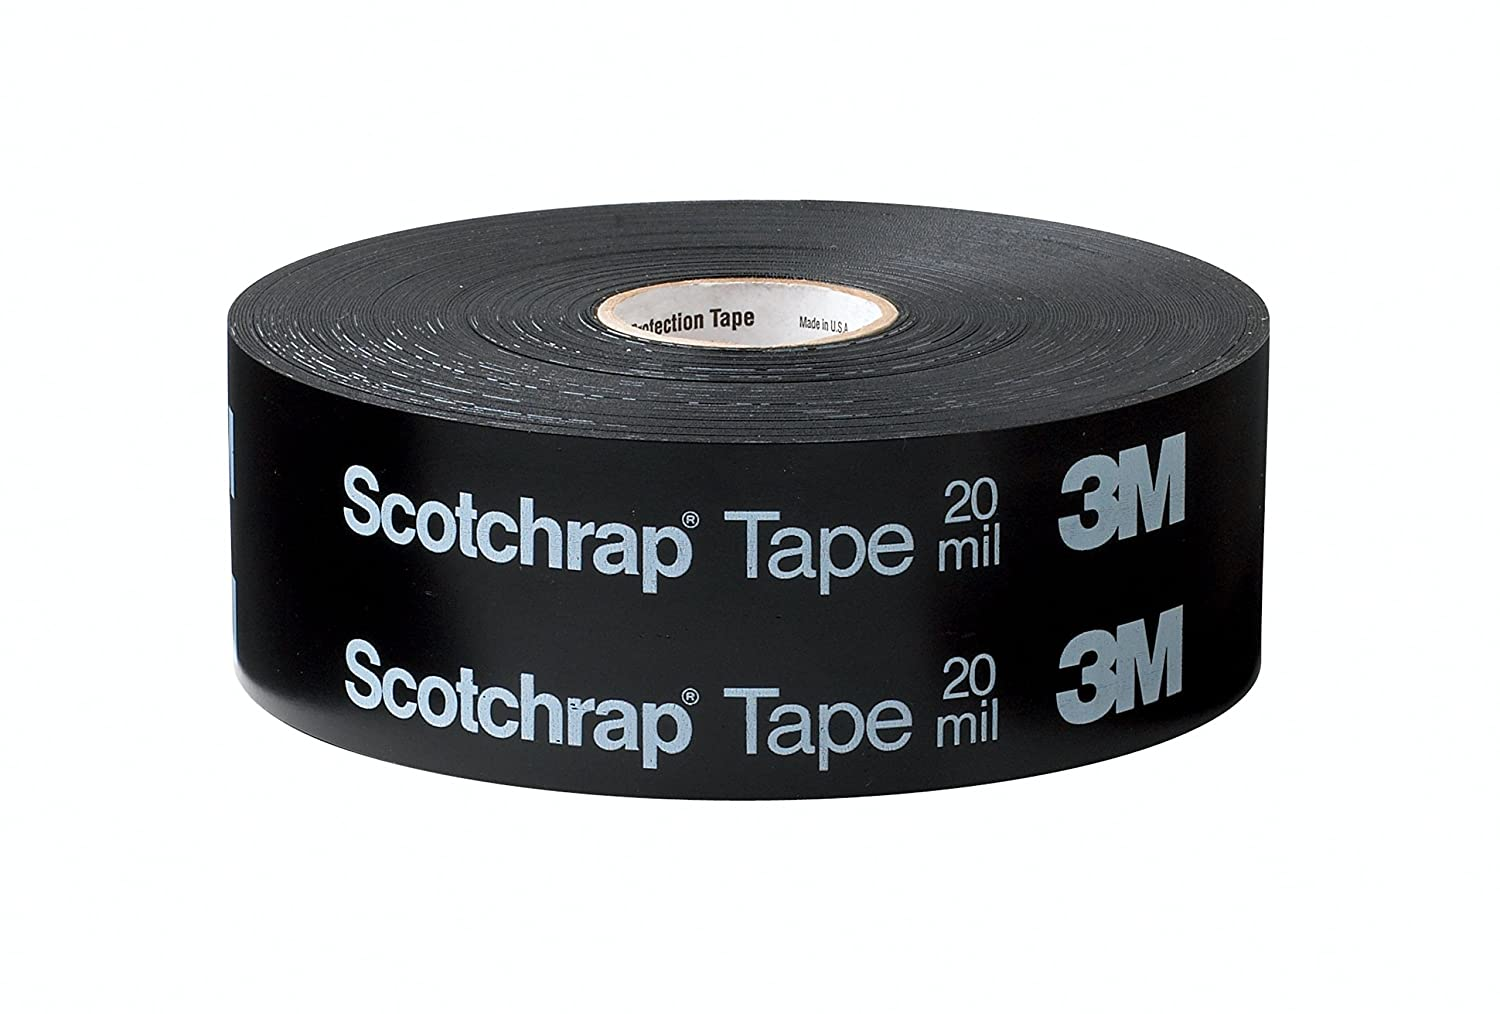 3M Scotchrap Vinyl Corrosion Protection Tape 51, Printed, 4 in x 100 ft, Black 81xW6aSkTCL